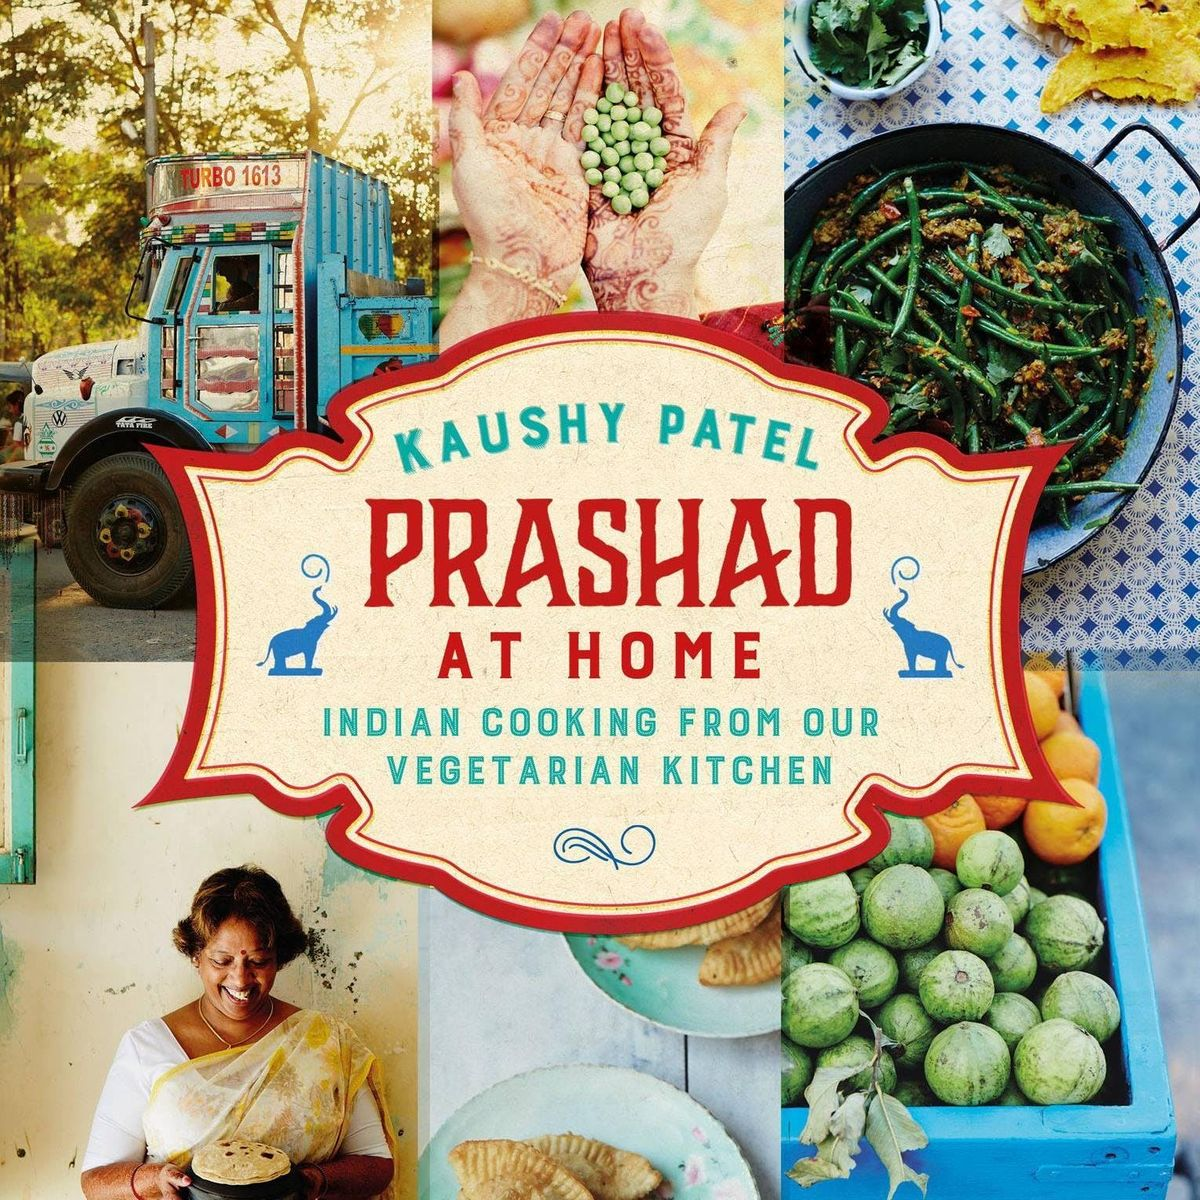 Learn the secrets of superb Indian cookery - demonstration days